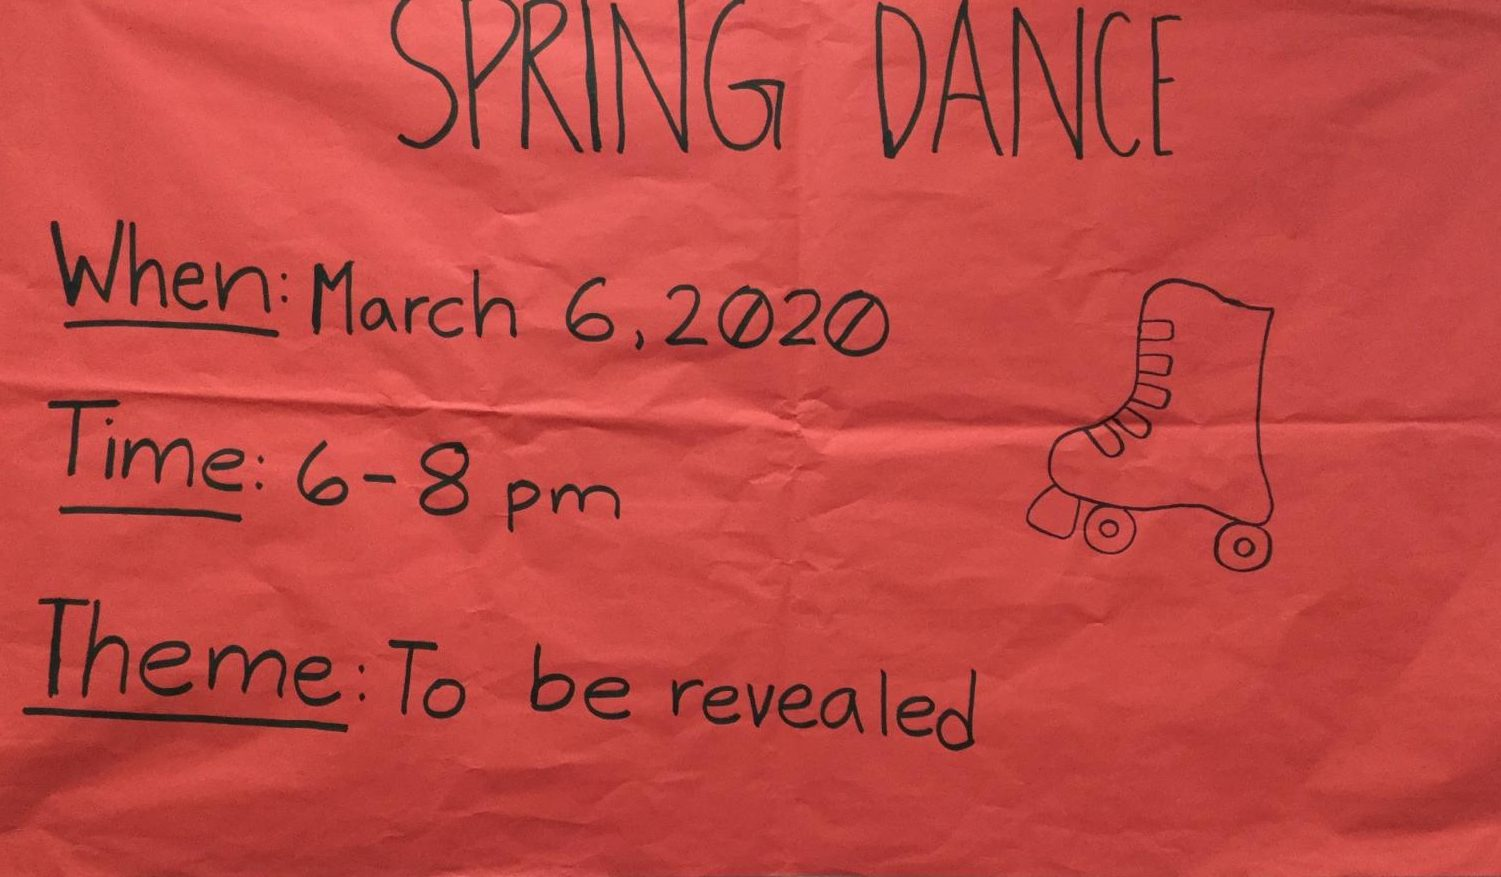 Poster of the Spring Dance